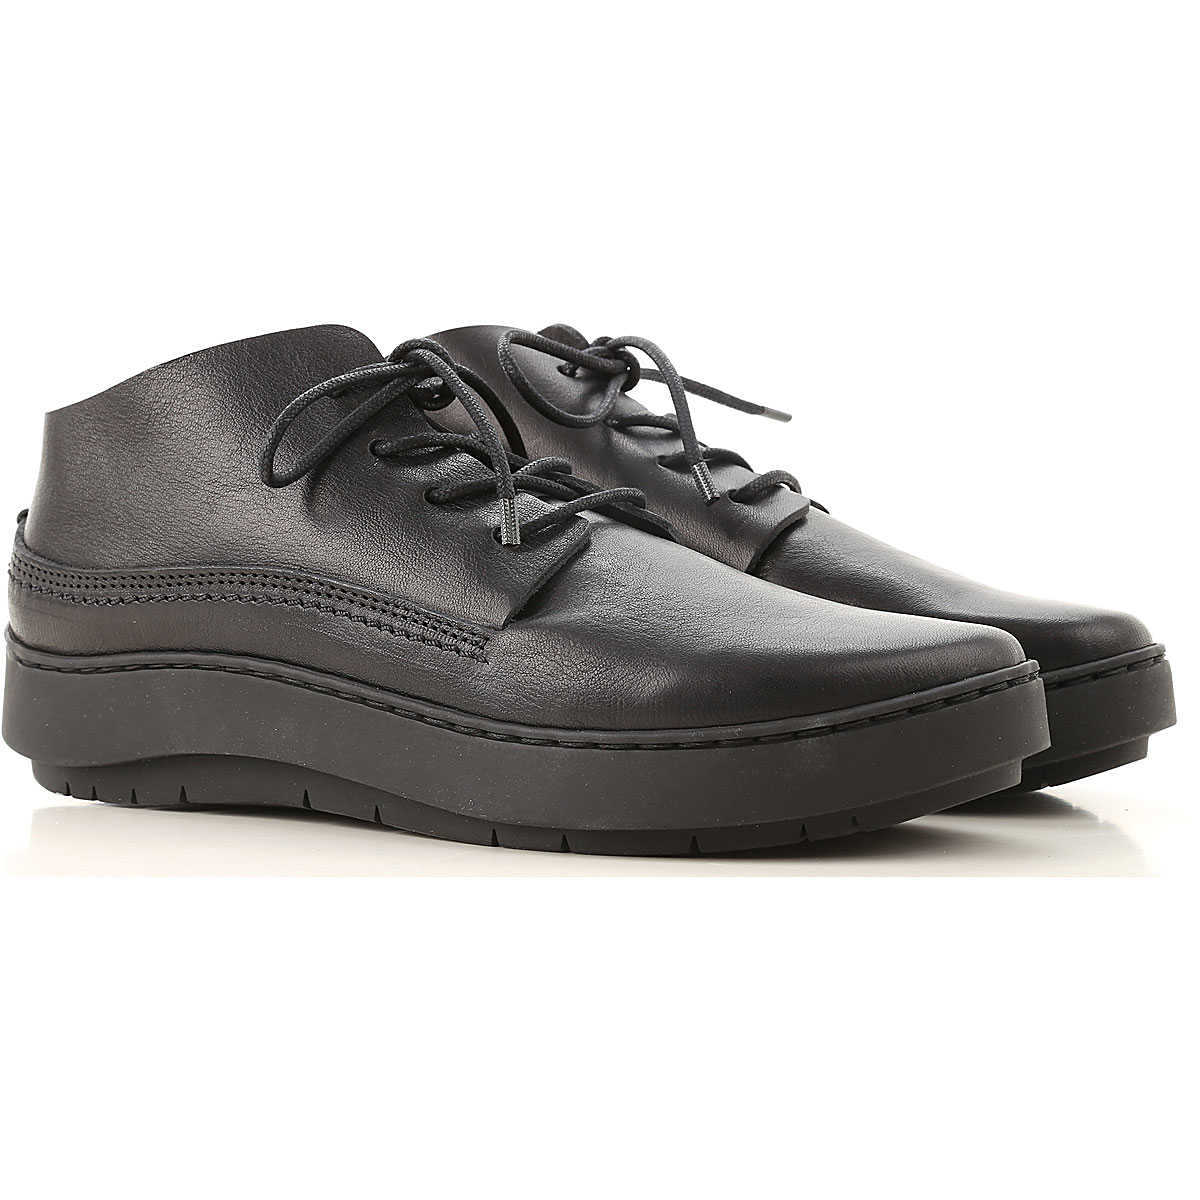 Trippen Lace Up Shoes for Men Oxfords Derbies and Brogues - GOOFASH